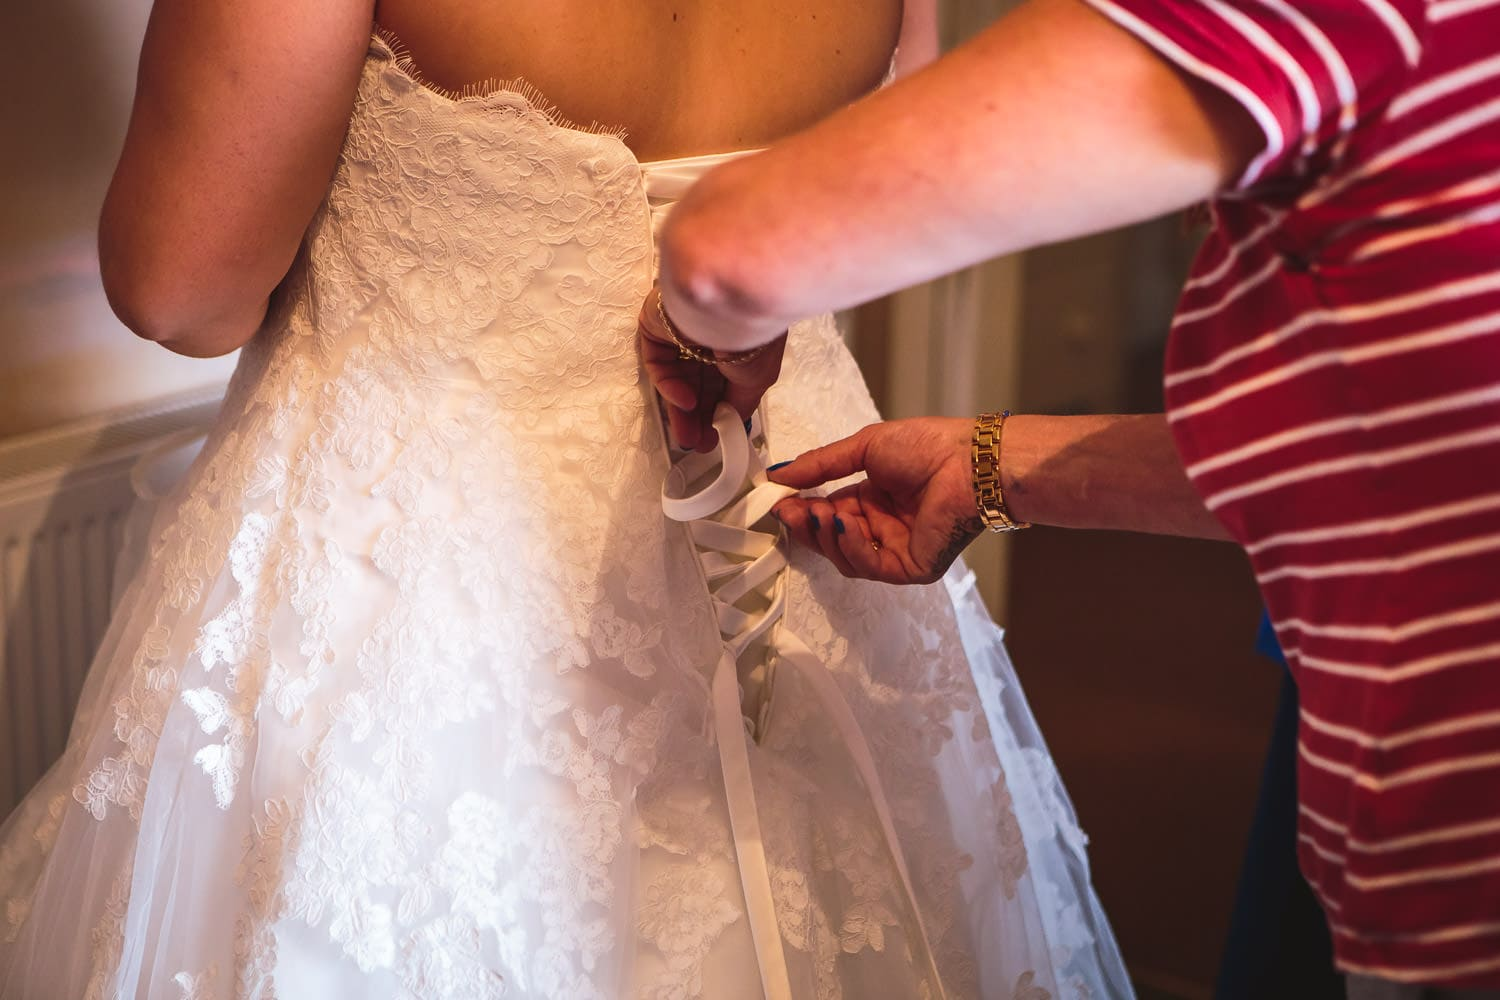 mother helps daughter put on wedding dress by chapter one photography